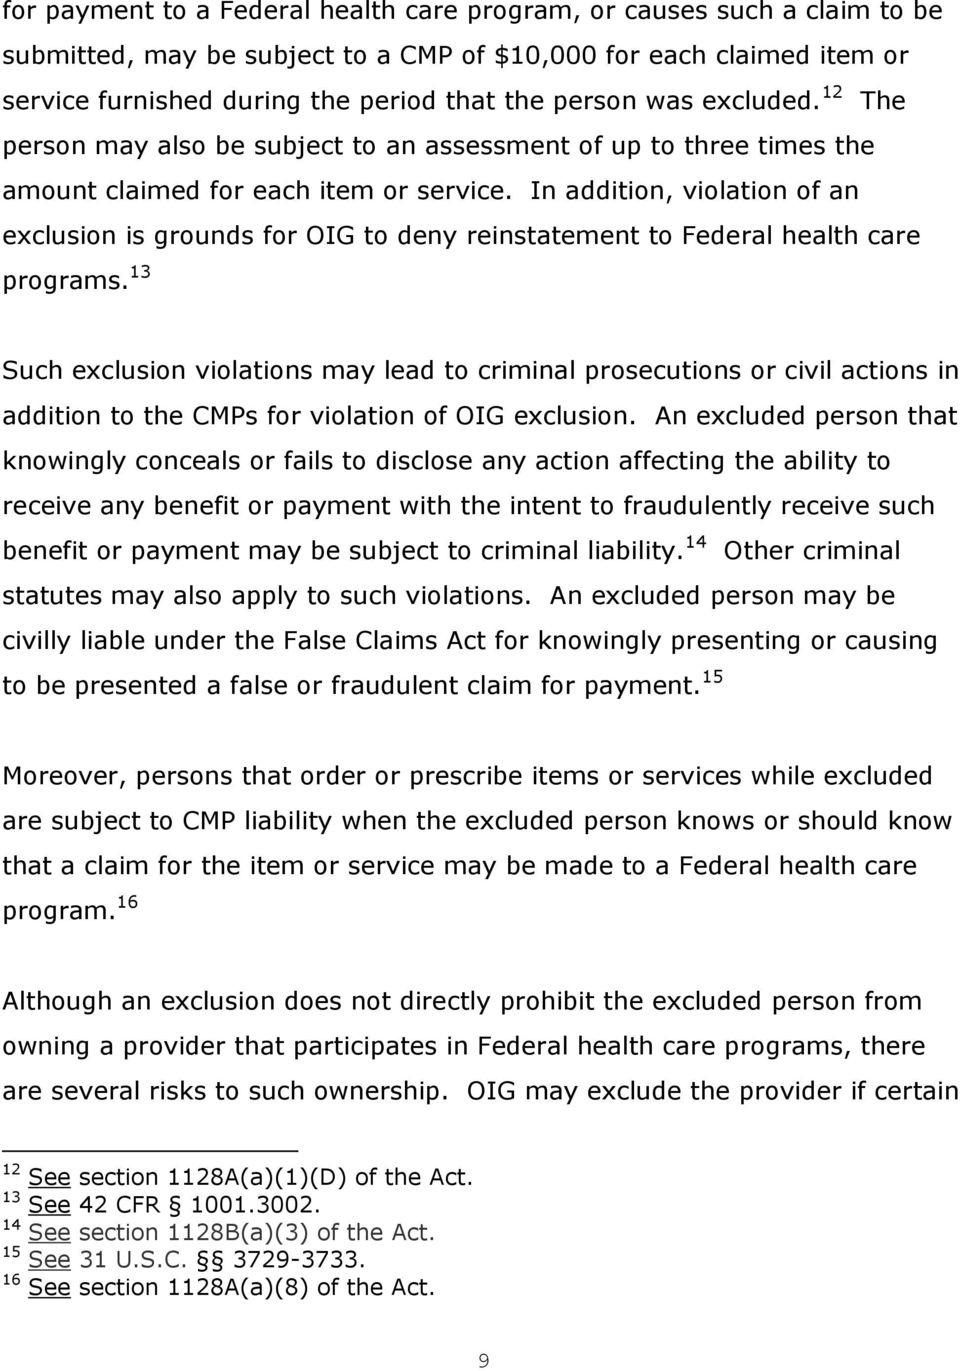 In addition, violation of an exclusion is grounds for OIG to deny reinstatement to Federal health care programs.